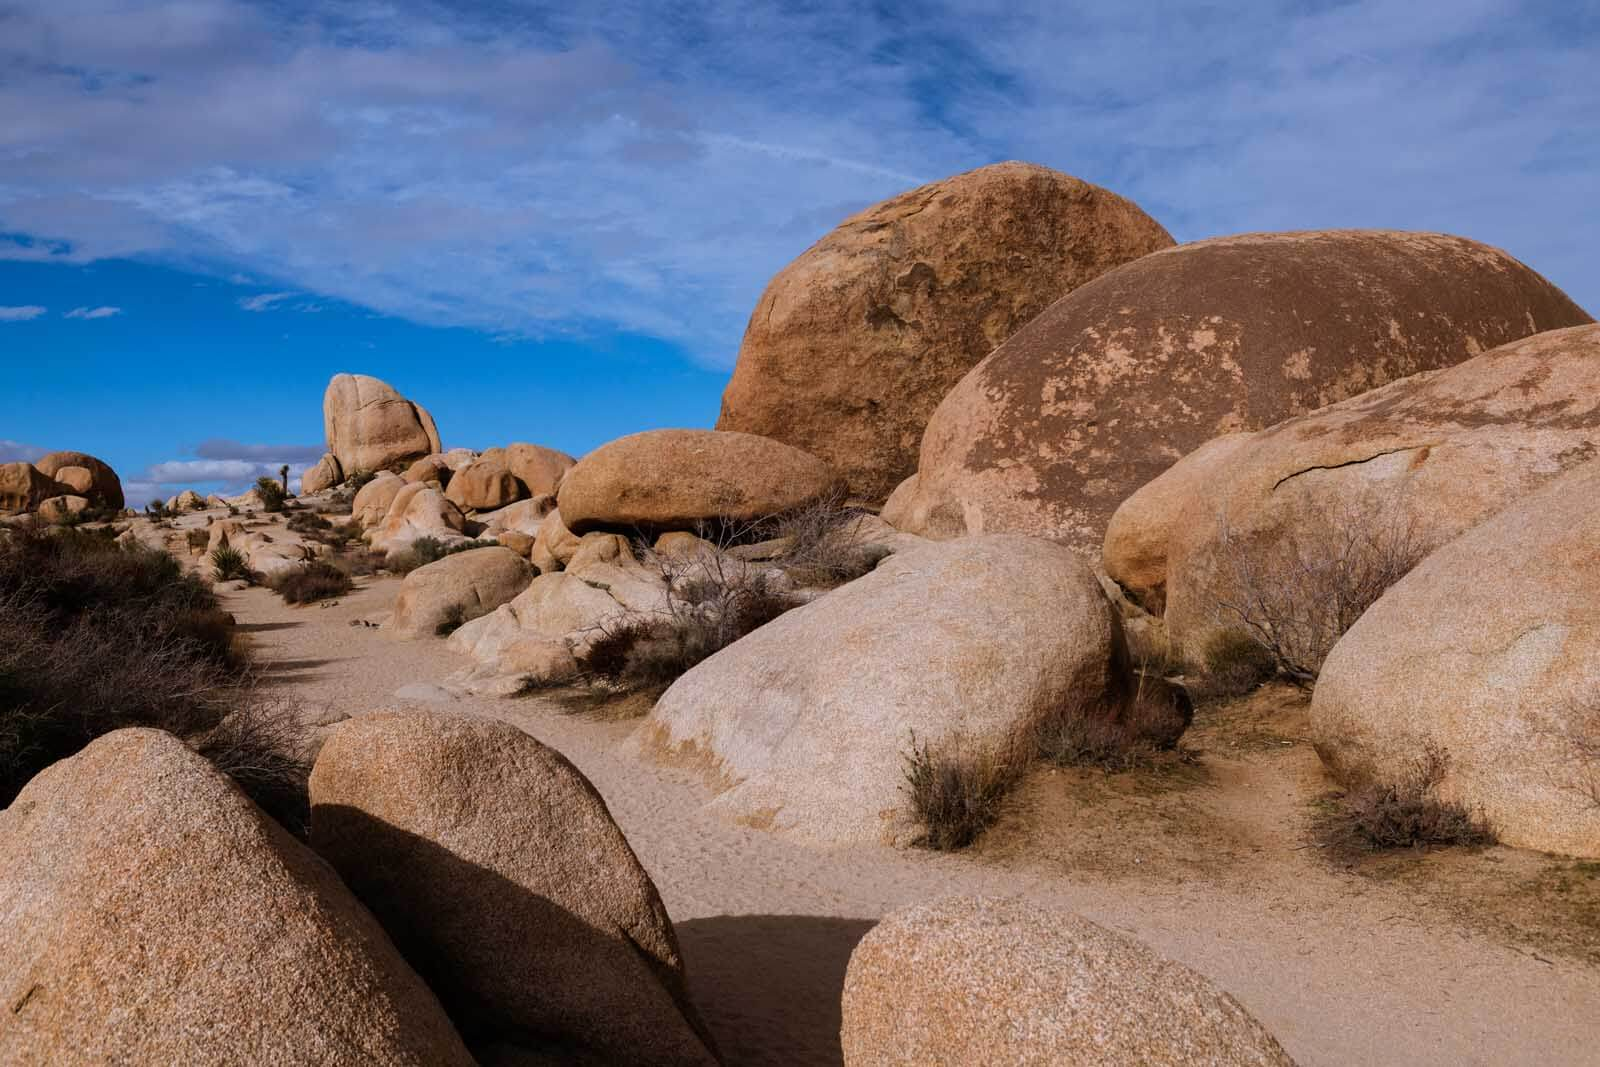 Rocks at White Tank in Joshua Tree